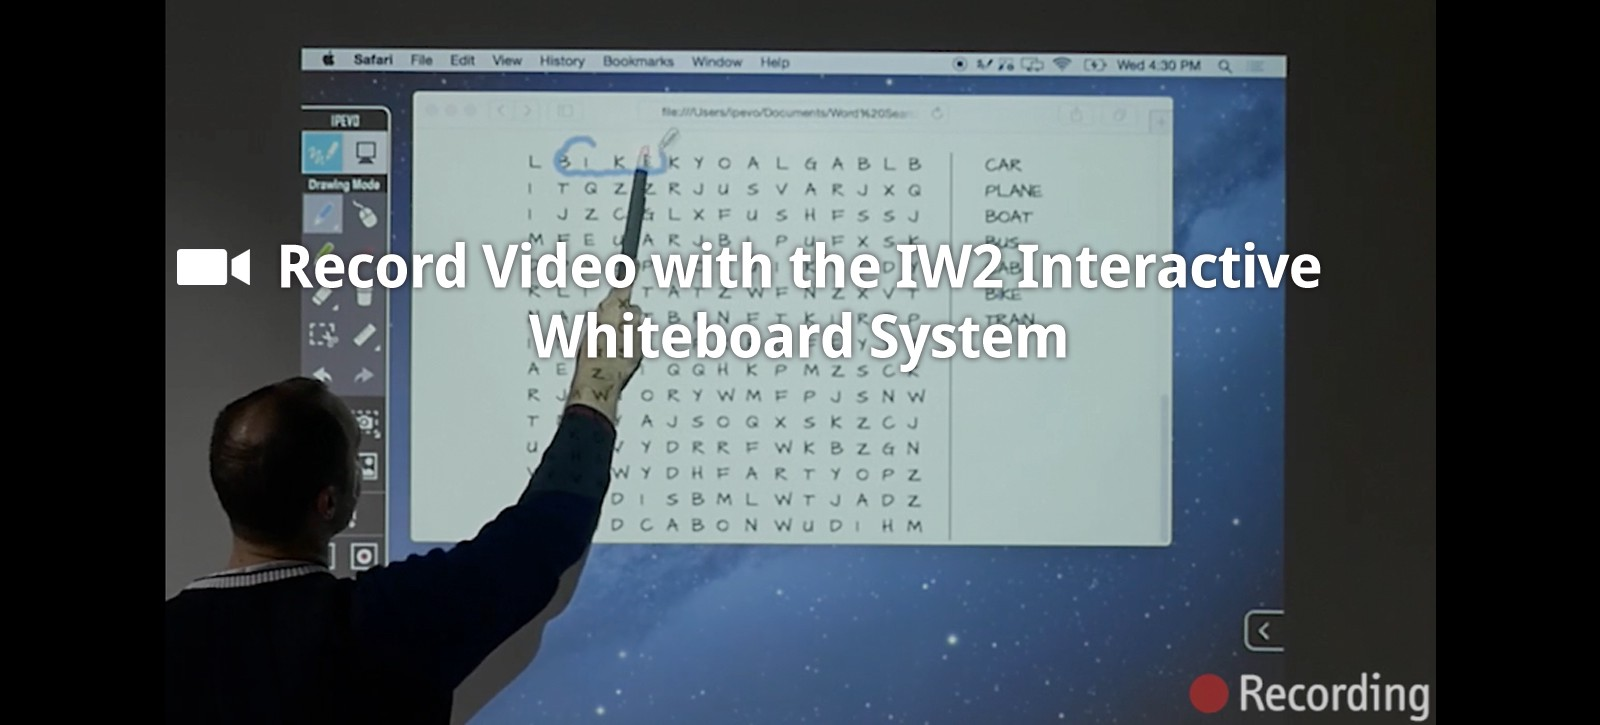 Record Video with the IW2 Interactive Whiteboard System